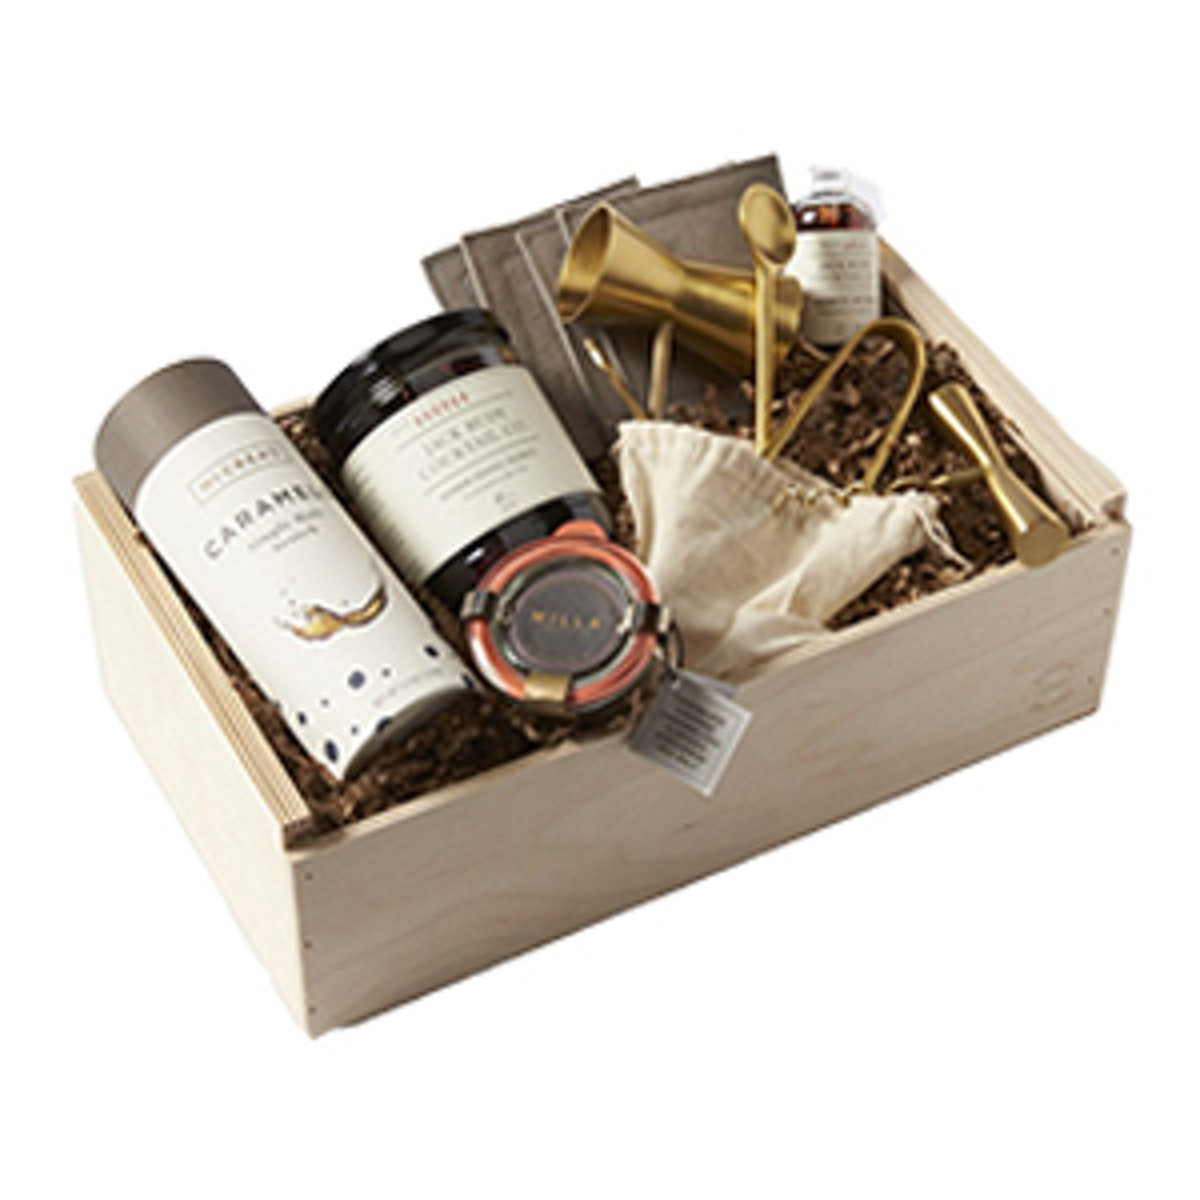 A Fine Cocktail Gift Box